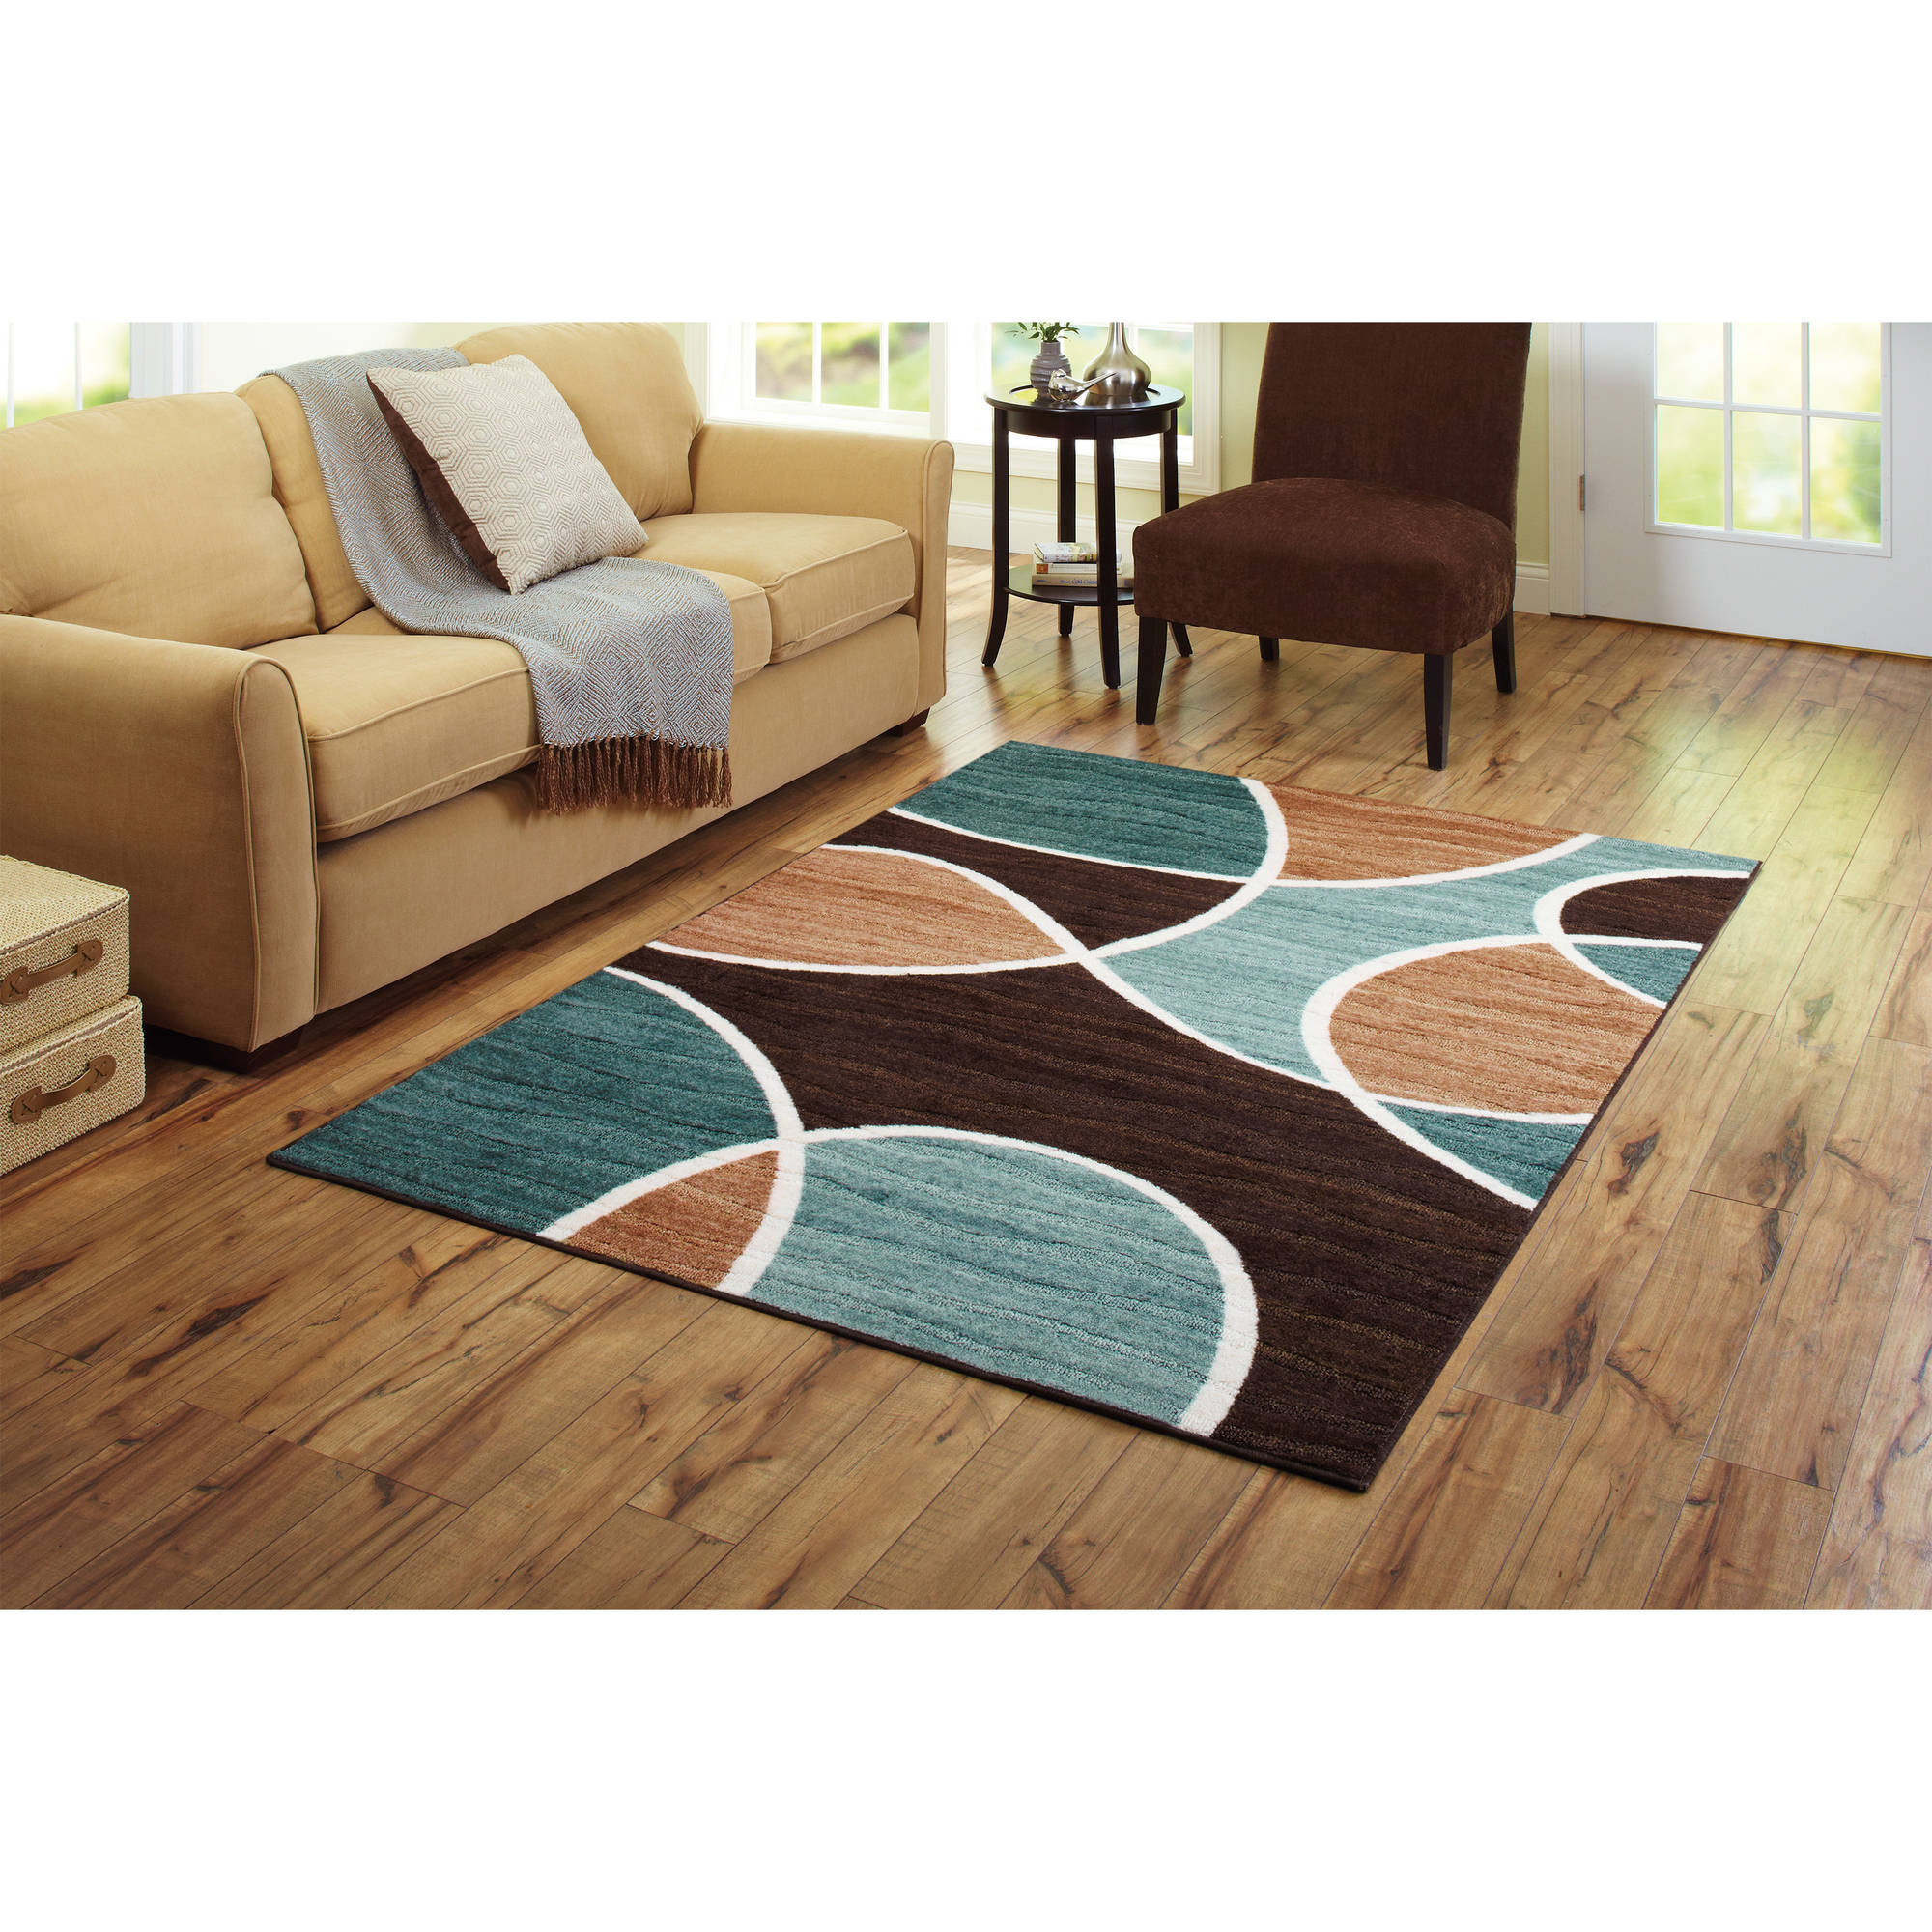 better homes and gardens geo waves 3-piece area rug set - walmart